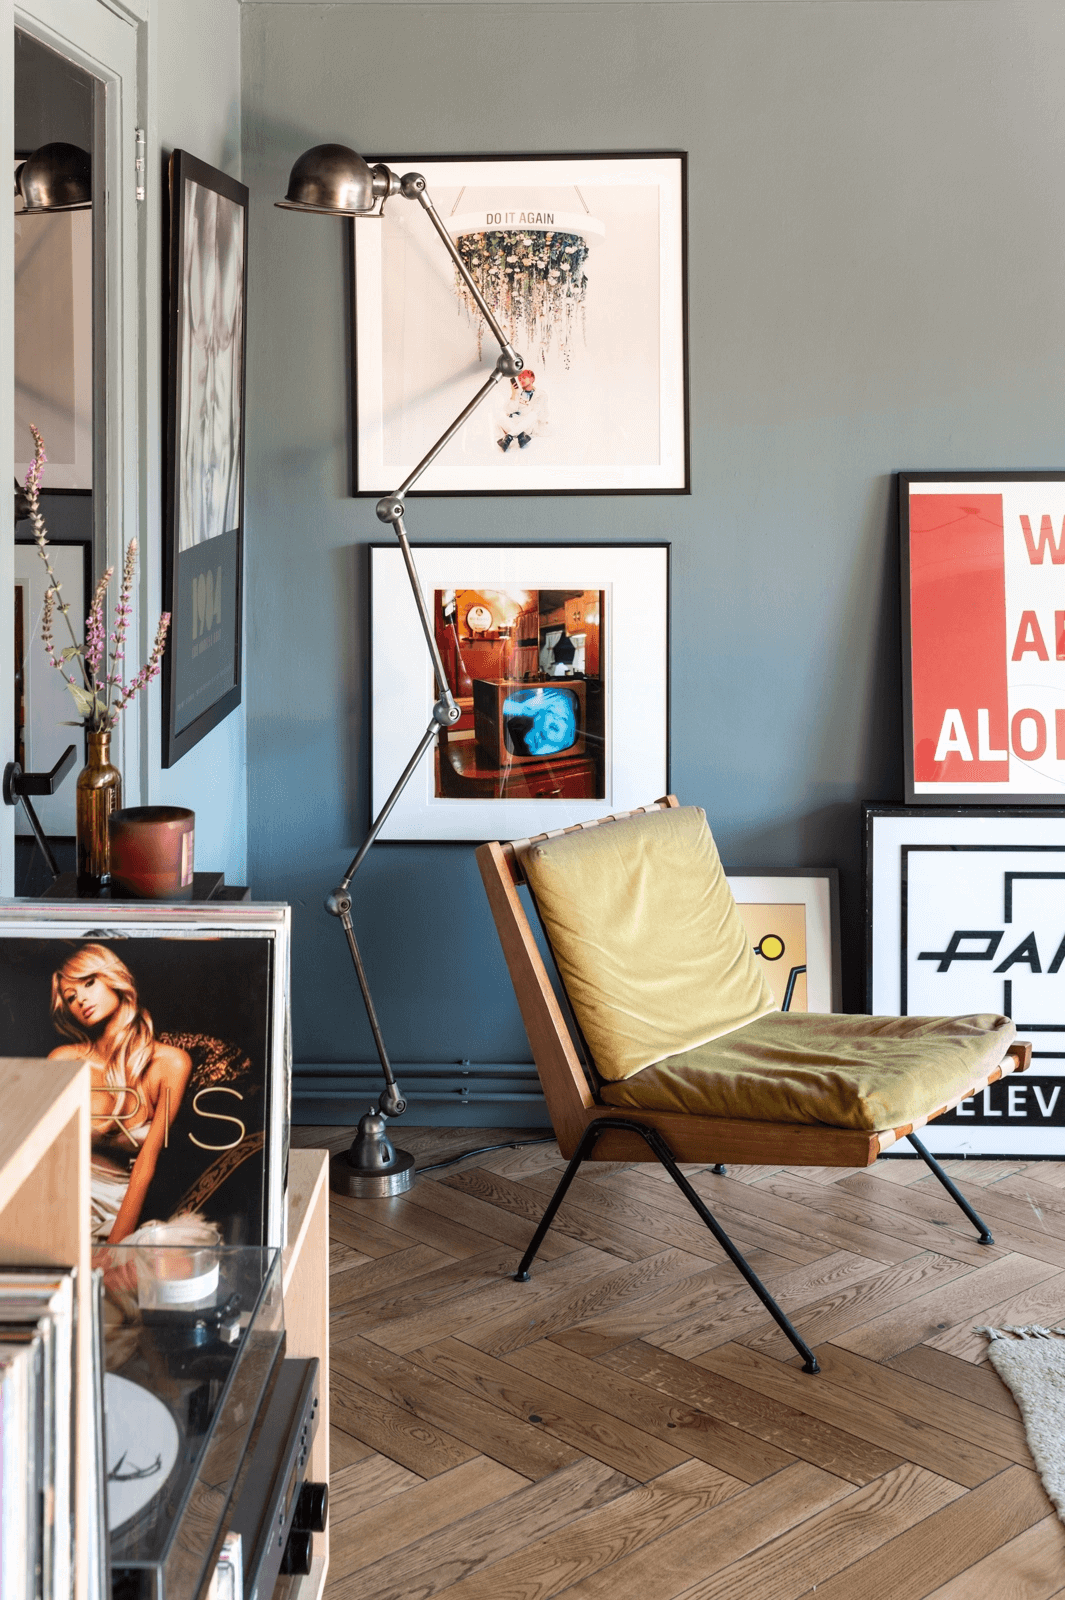 Colorful Rooms in a Mid-Century London Home